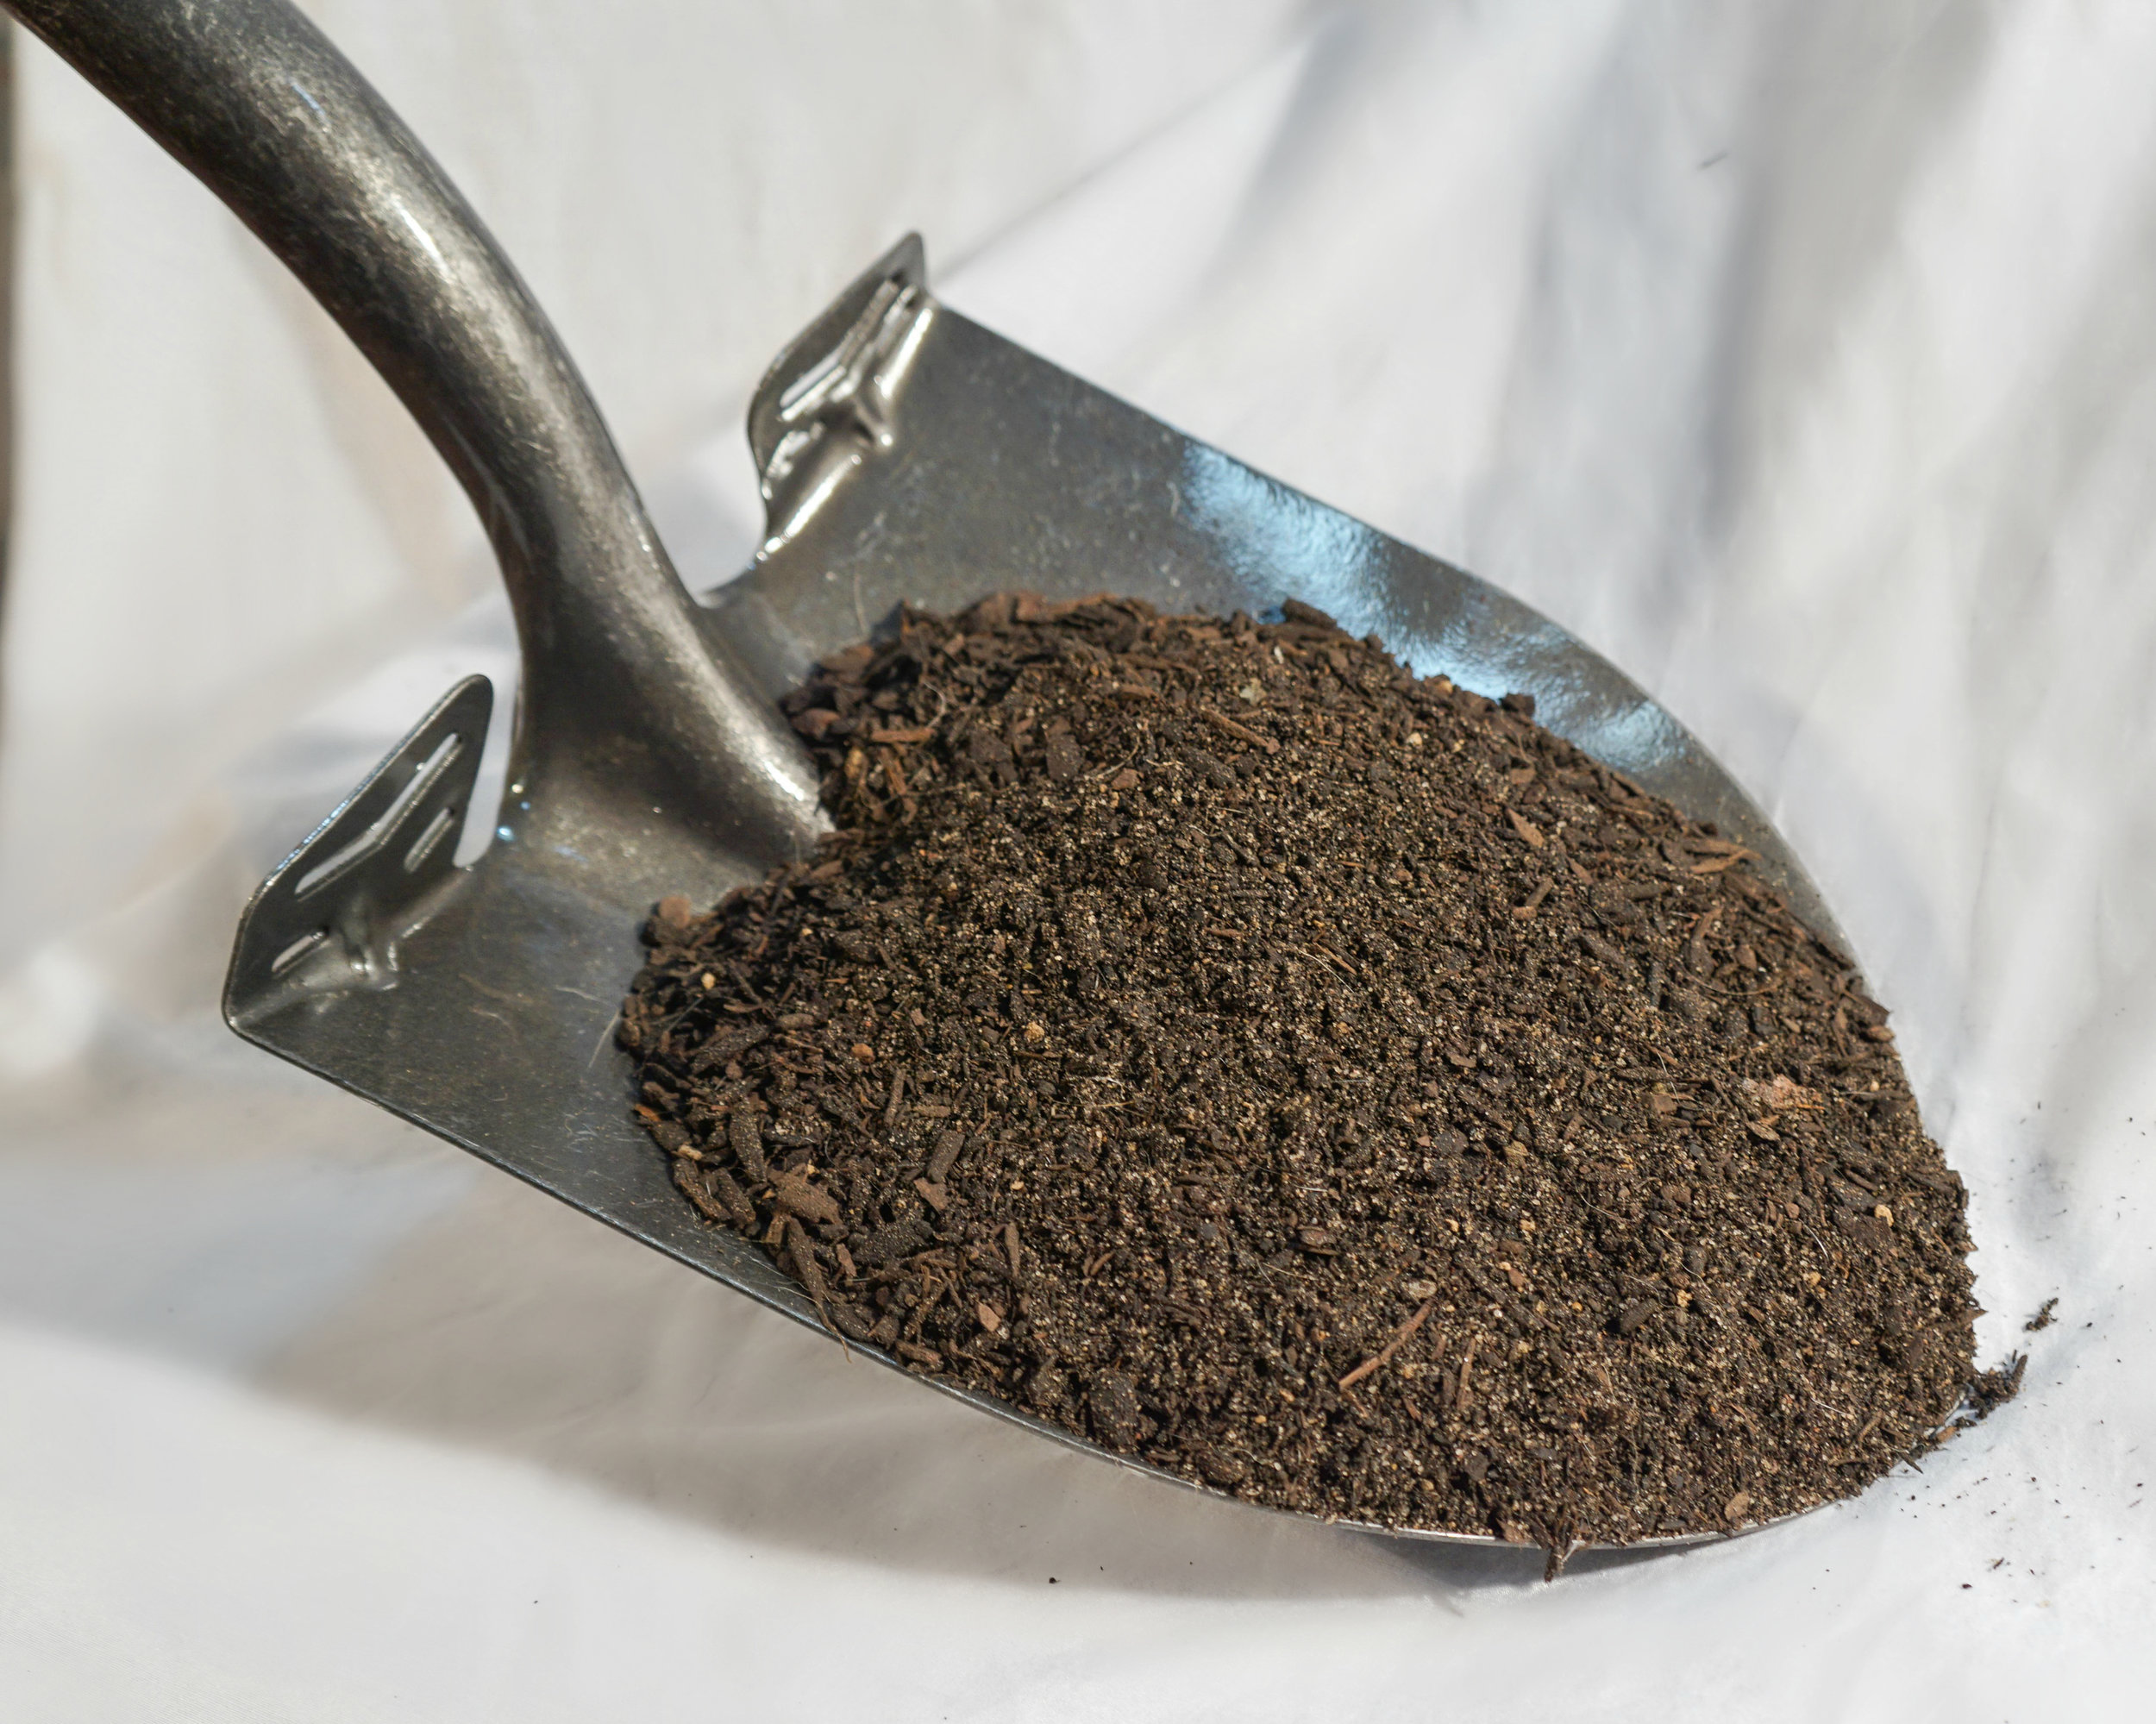 Raised Bed Blend - $50 per cubic yardBlend of Aged Pine Bark, Washed Sands, and Premium Compost. Blended to provide superior soil structure that retains moisture and encourages root growth.Ideal for raised vegetable beds.